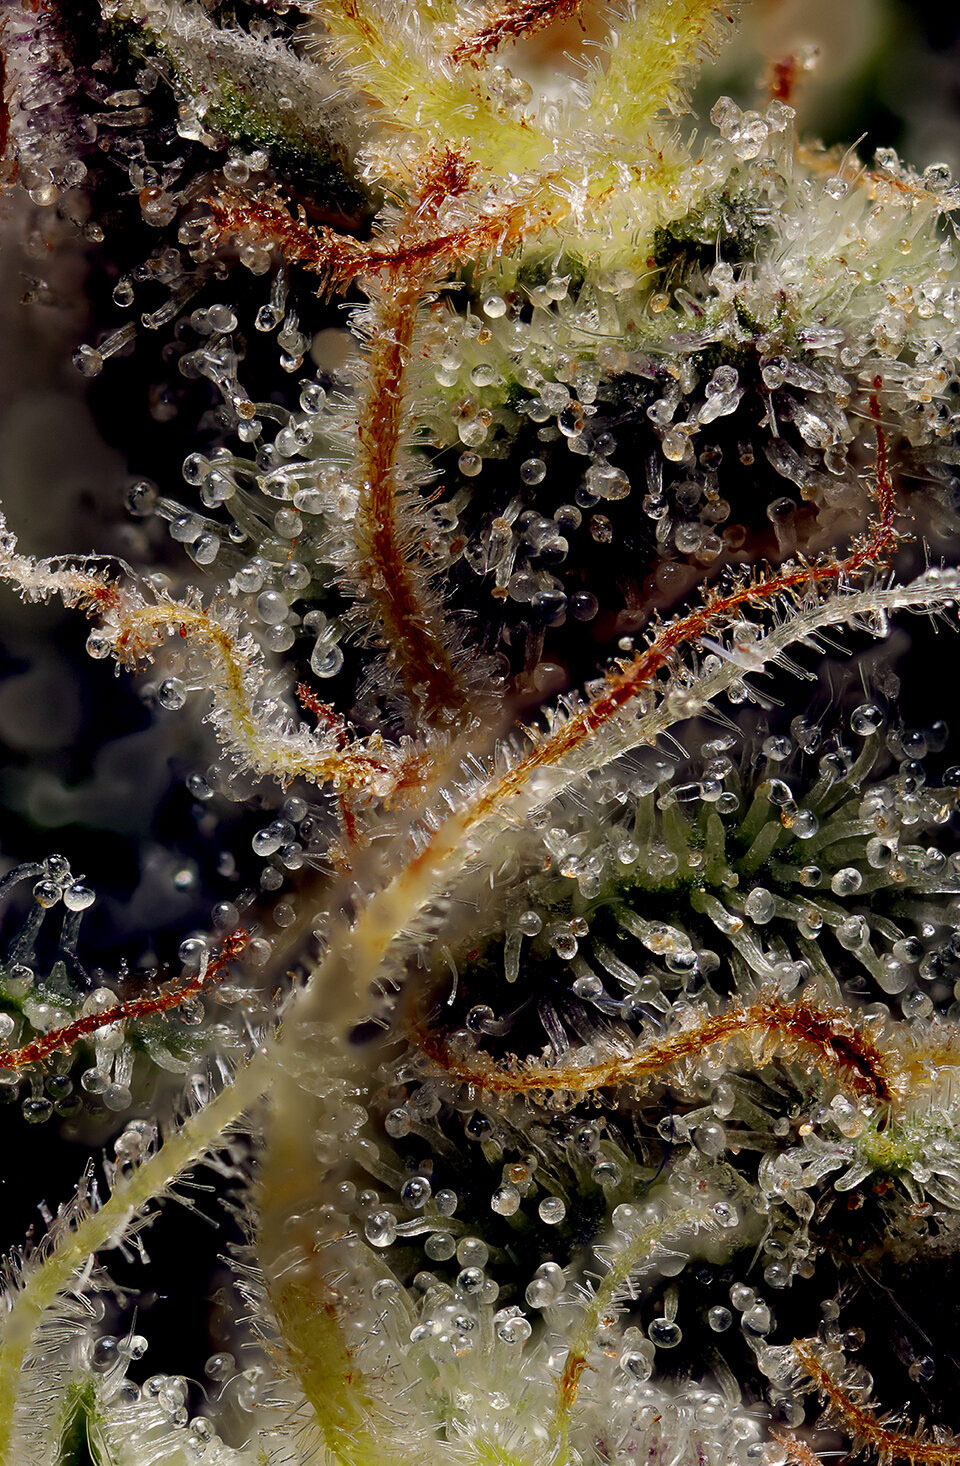 dominic-perri-cannabis-flower-macro-05